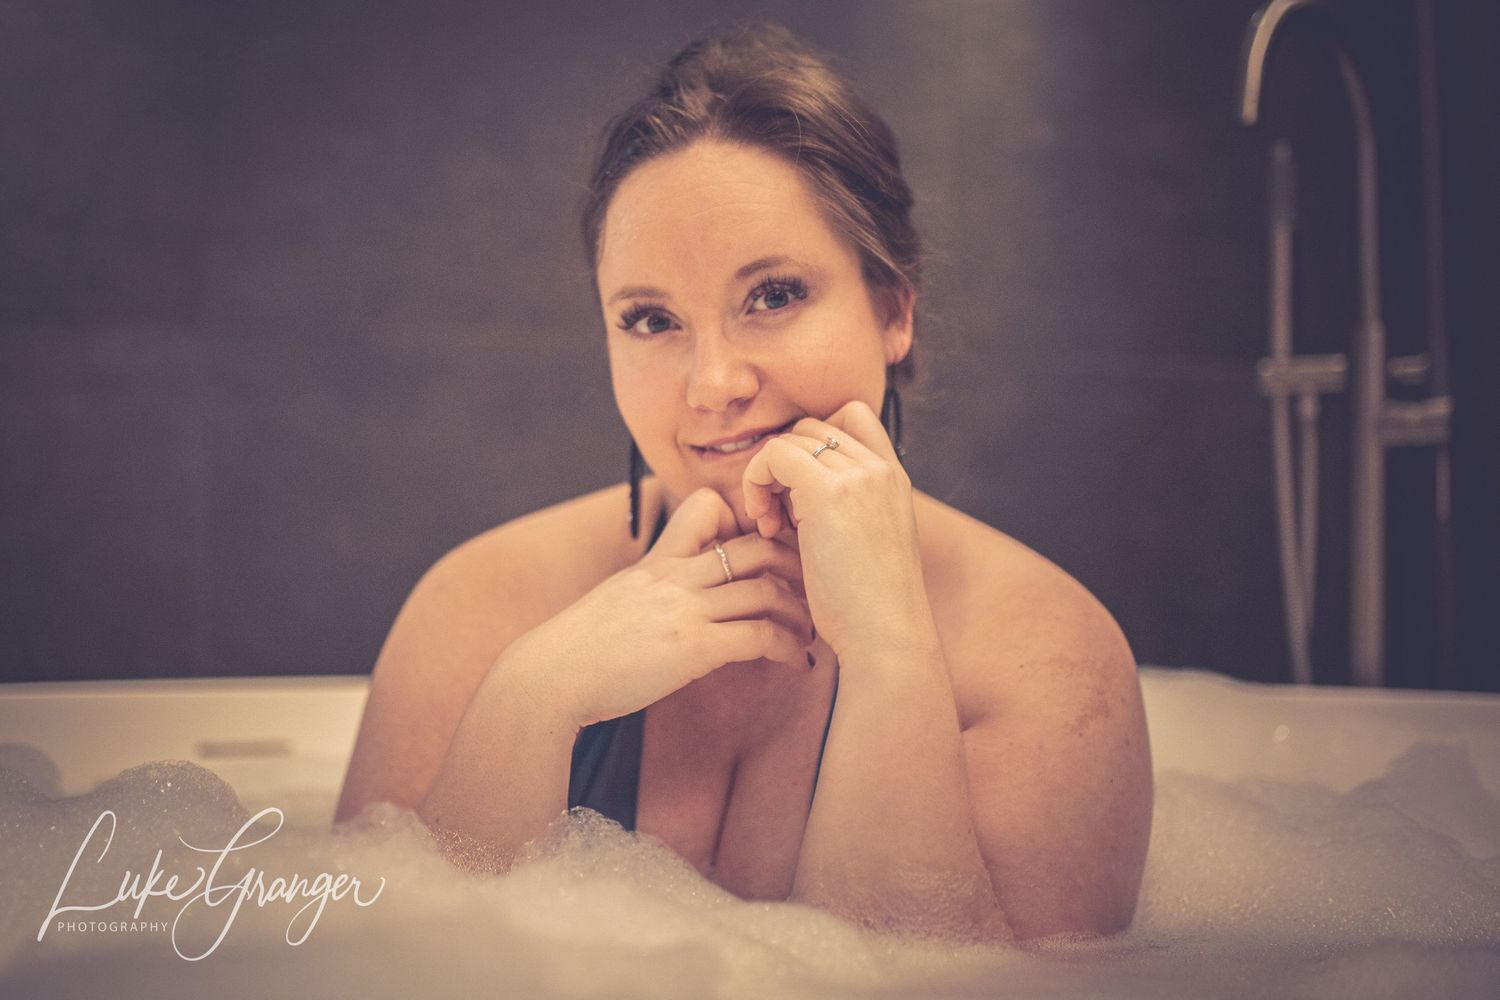 boudoir photo close up of woman in a bubble bath